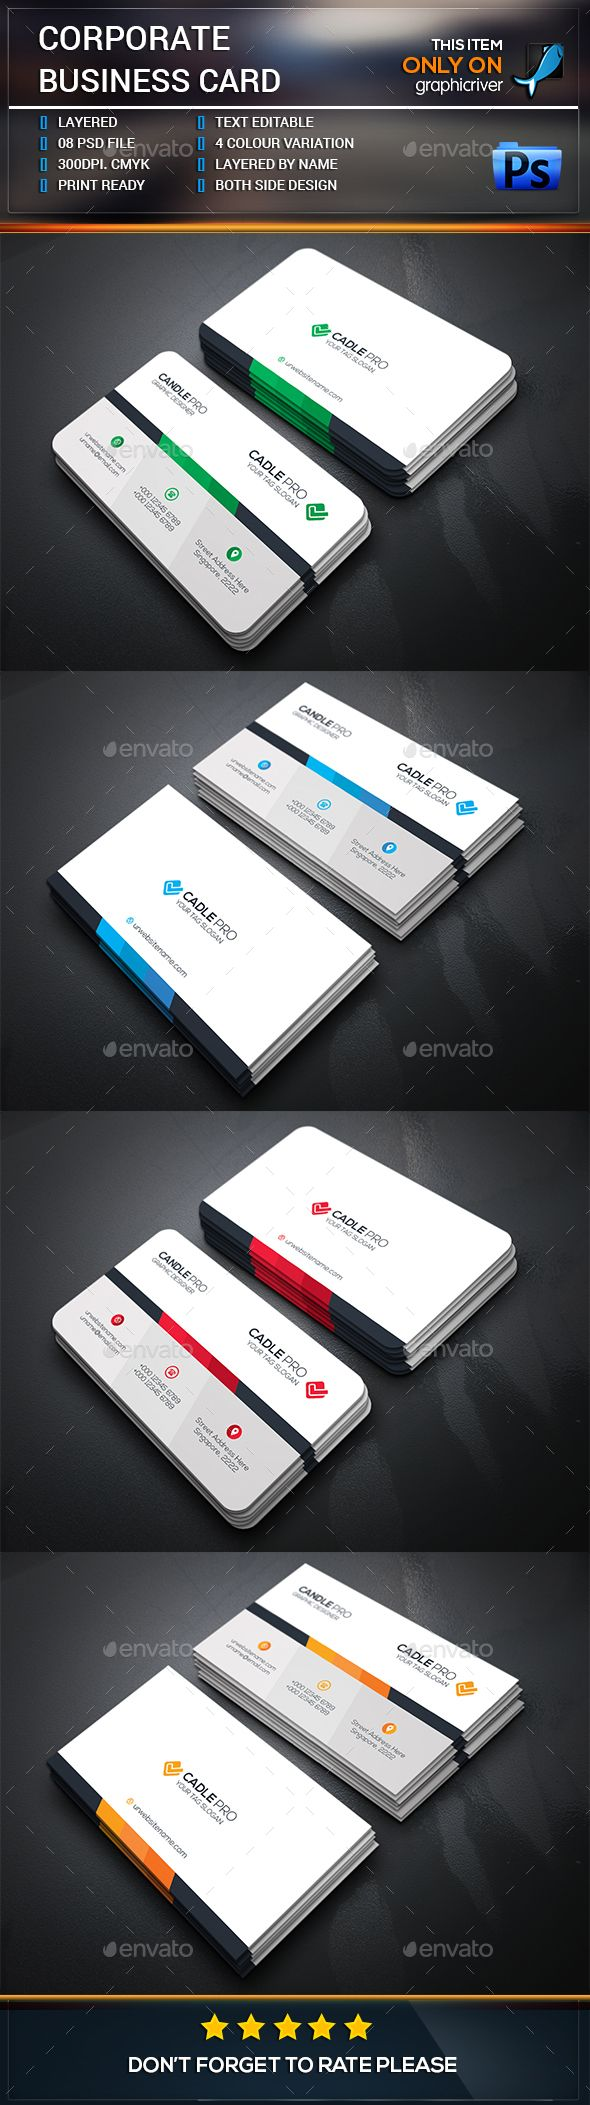 Corporate business card template corporate business card corporate business card template photoshop psd elements concept available here https reheart Choice Image